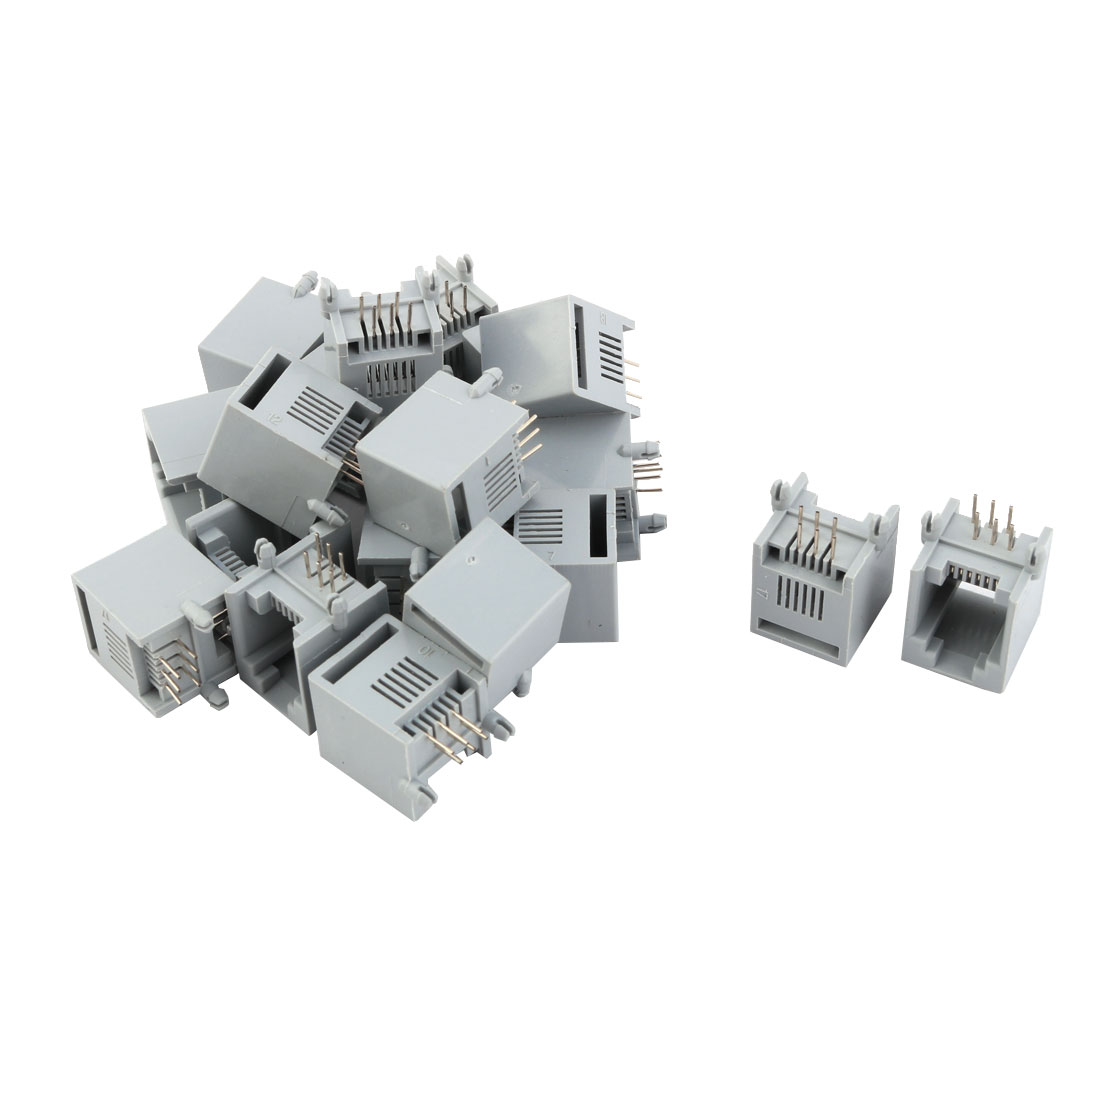 RJ12 6P6C Female PCB Mounting Modular Jack Adapter Telephone Phone Connector 20pcs